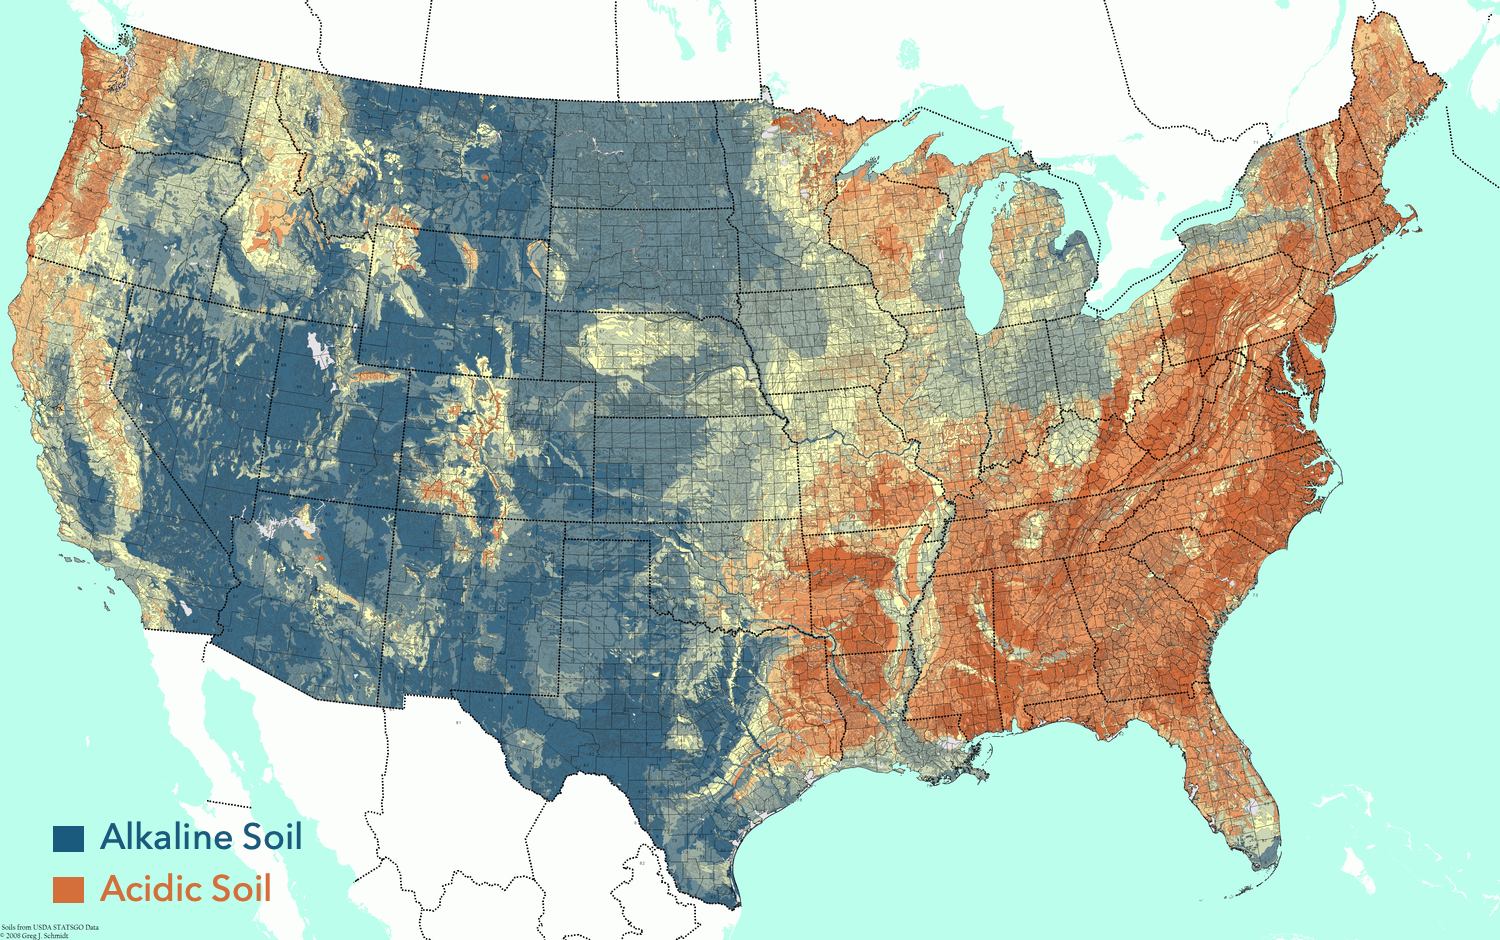 truSpring Grow is primarily intended for areas with highly alkaline soil (shown in blue).